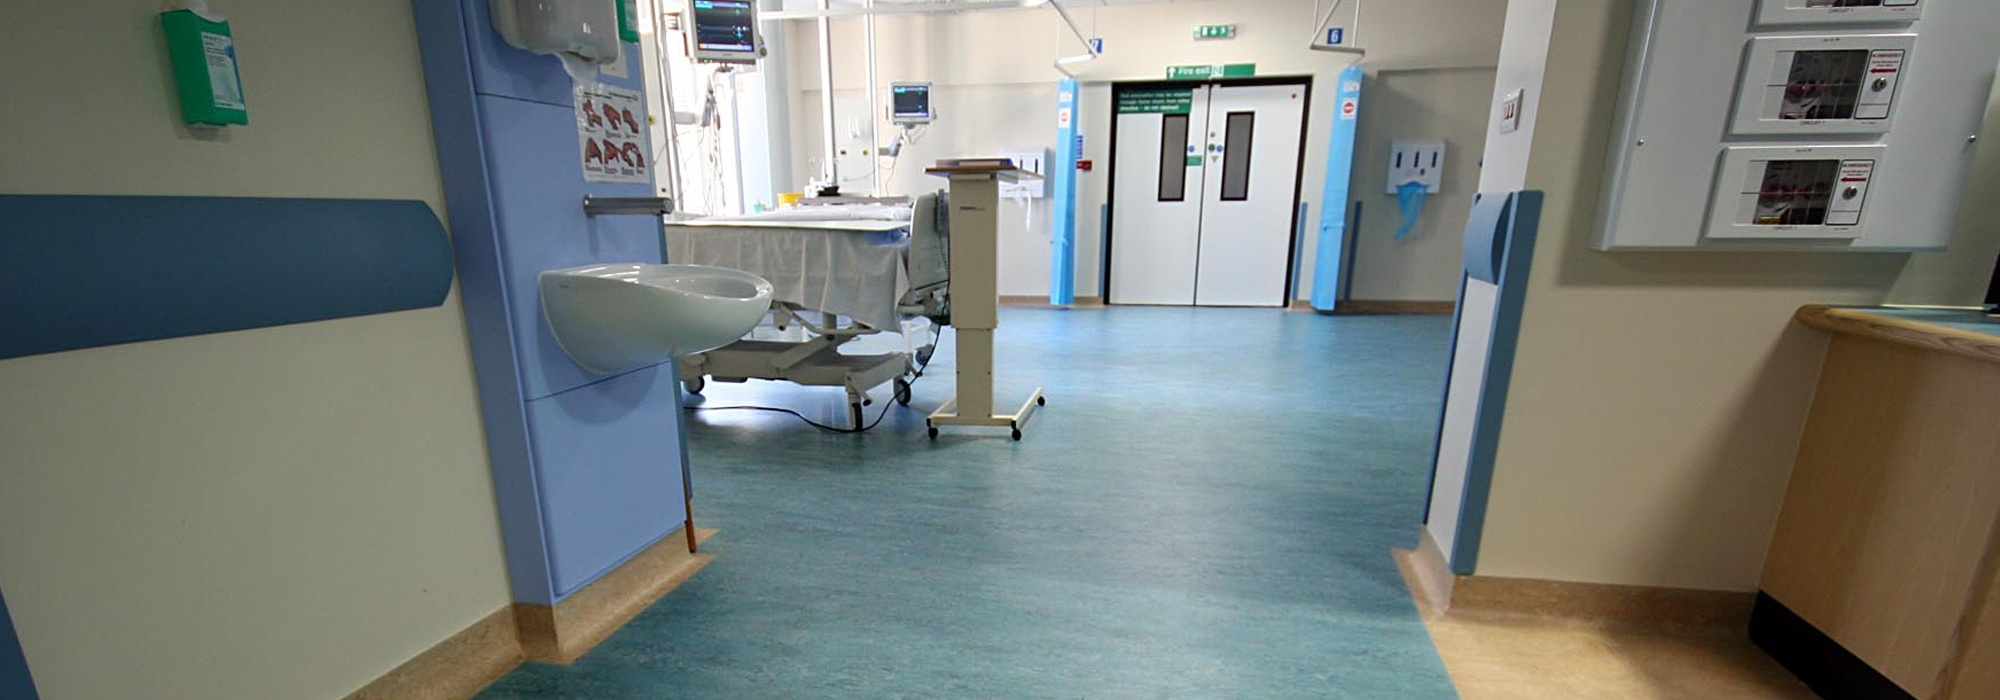 Birmingham Hospitals improve cleaning